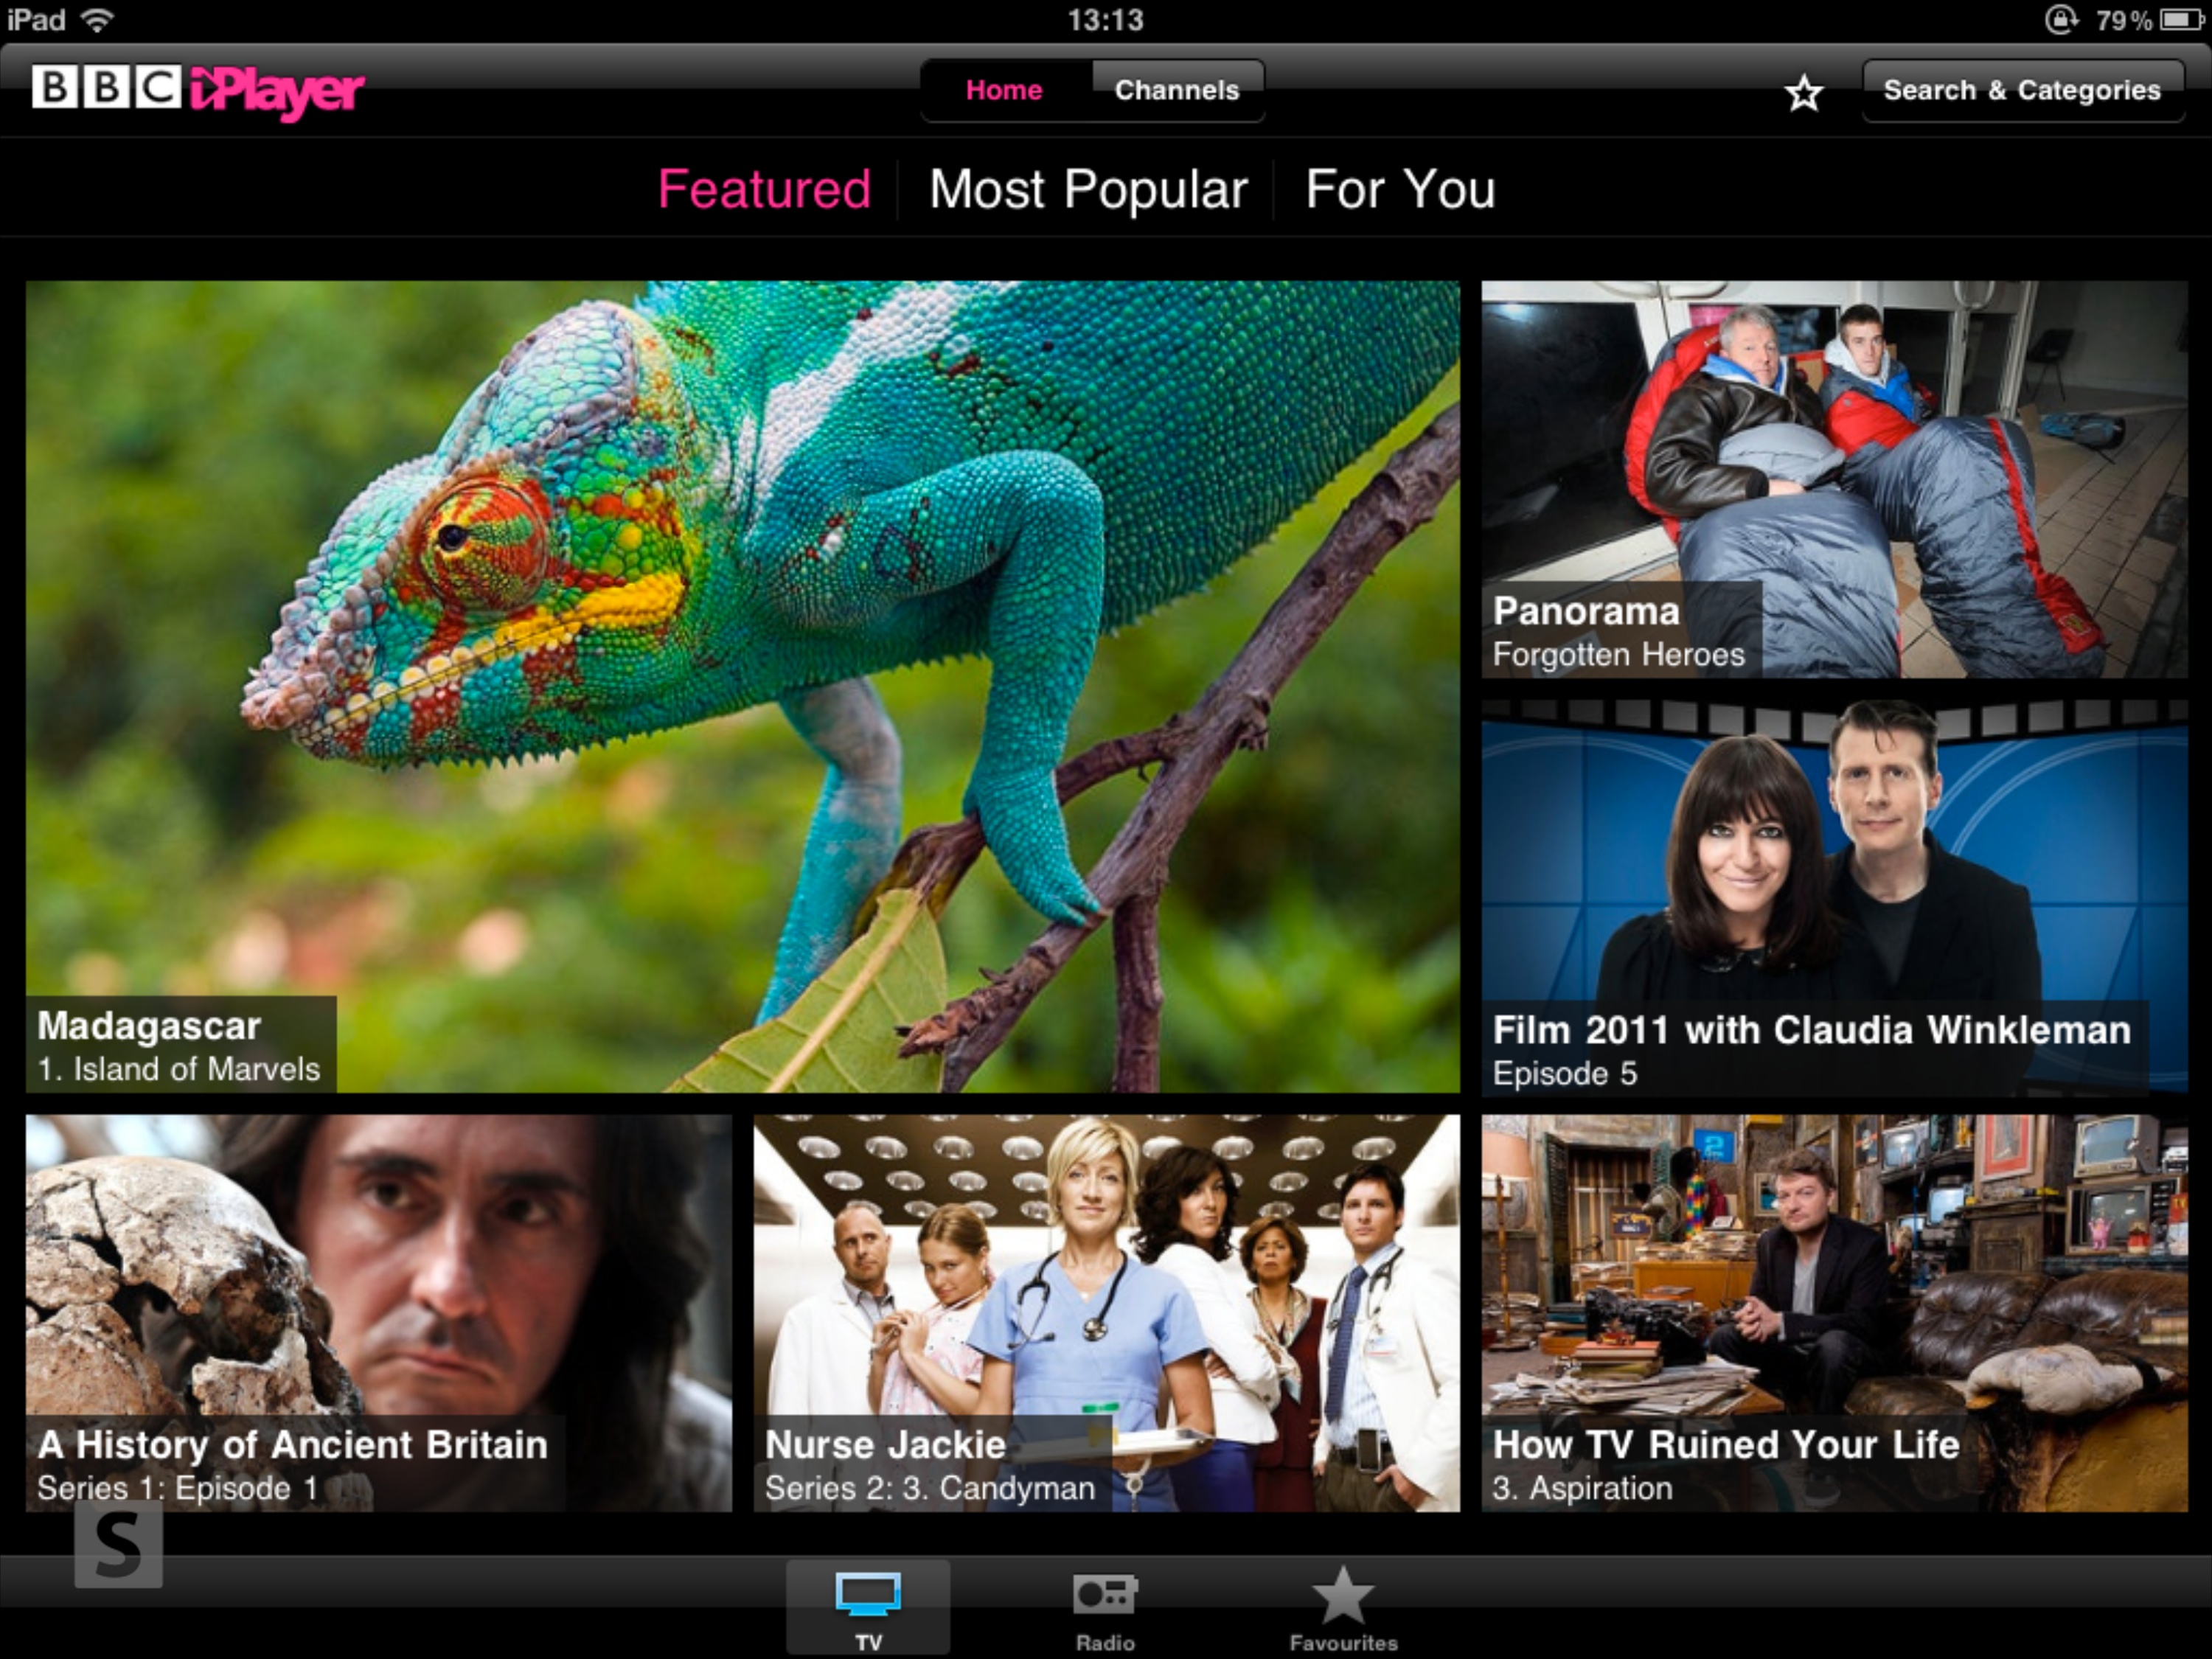 BBC iPlayer iPad app home screen